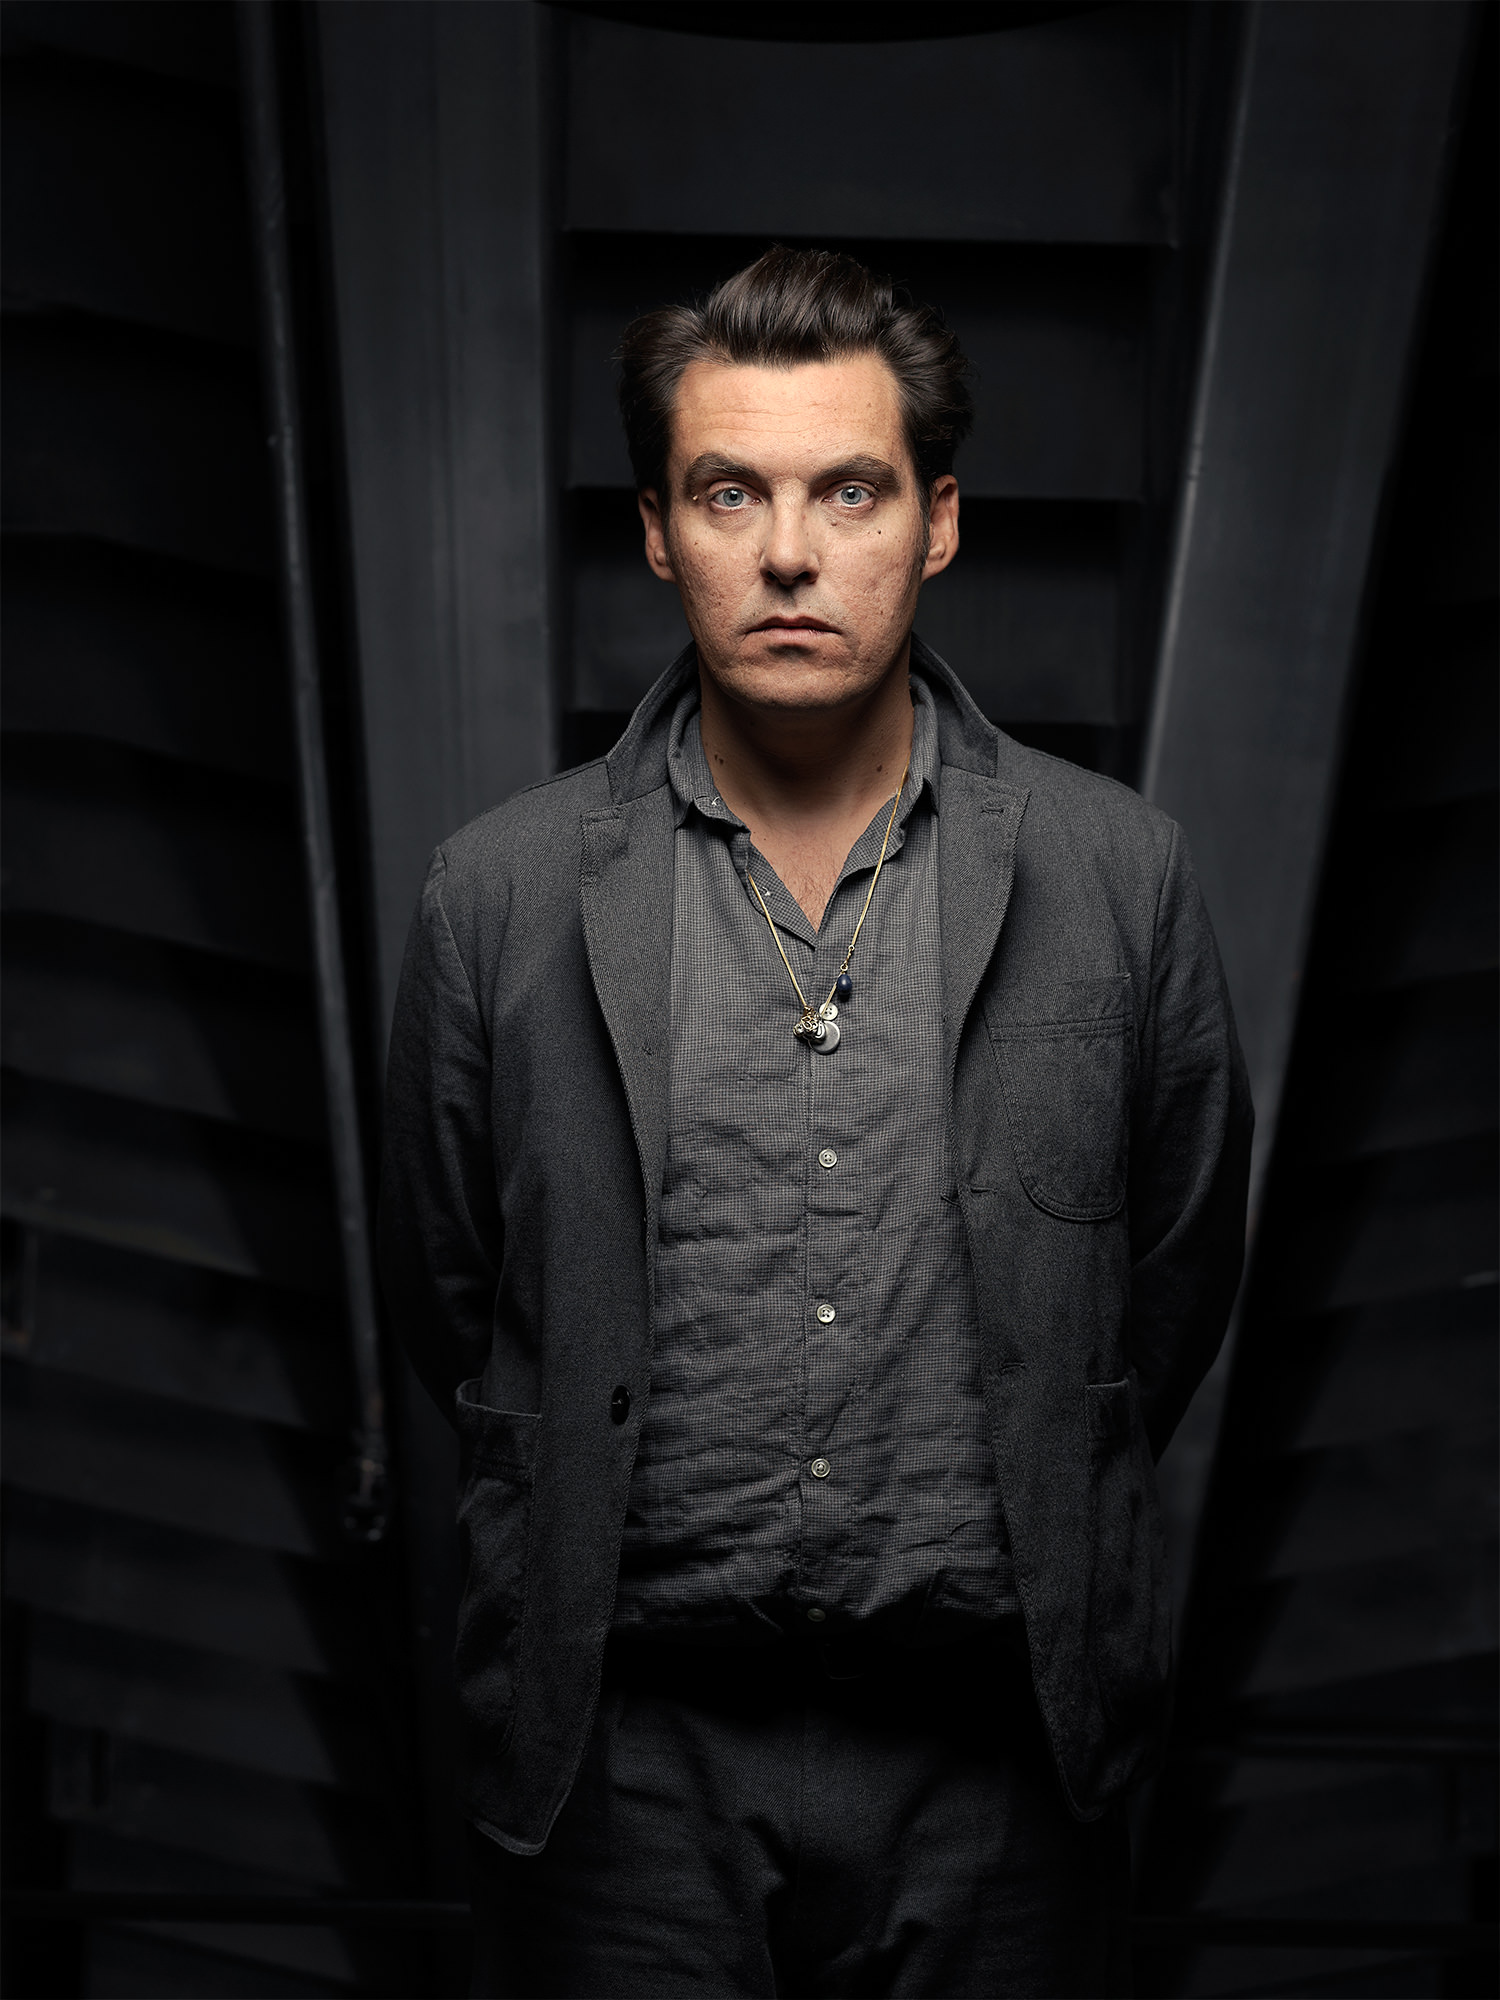 Joe Wright - British Director & Producer